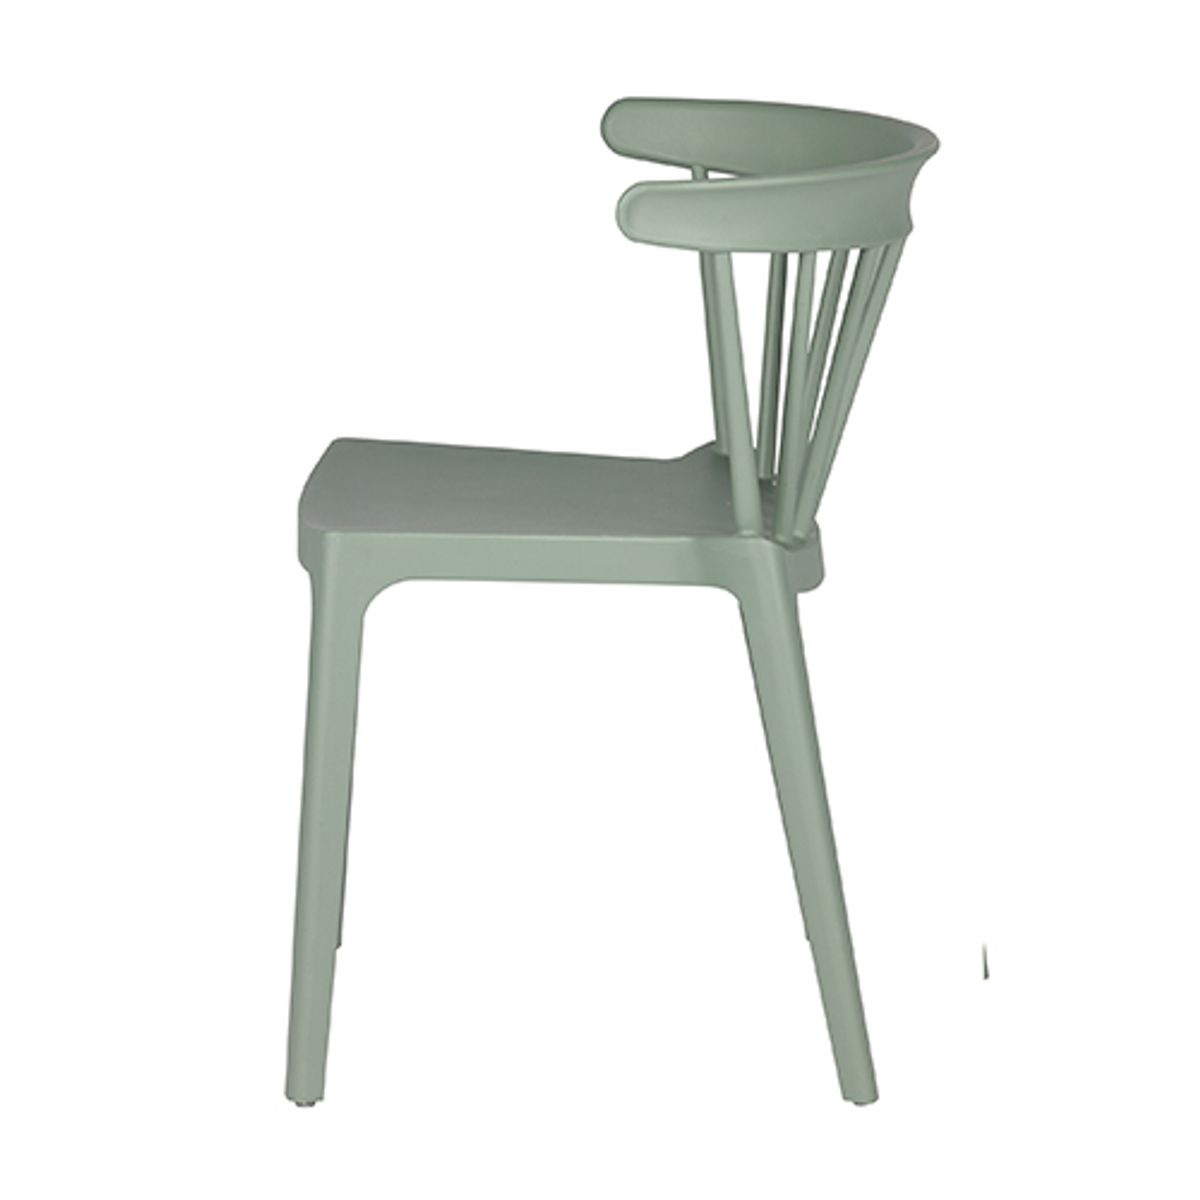 Chaise empilable en plastique Bliss - jade